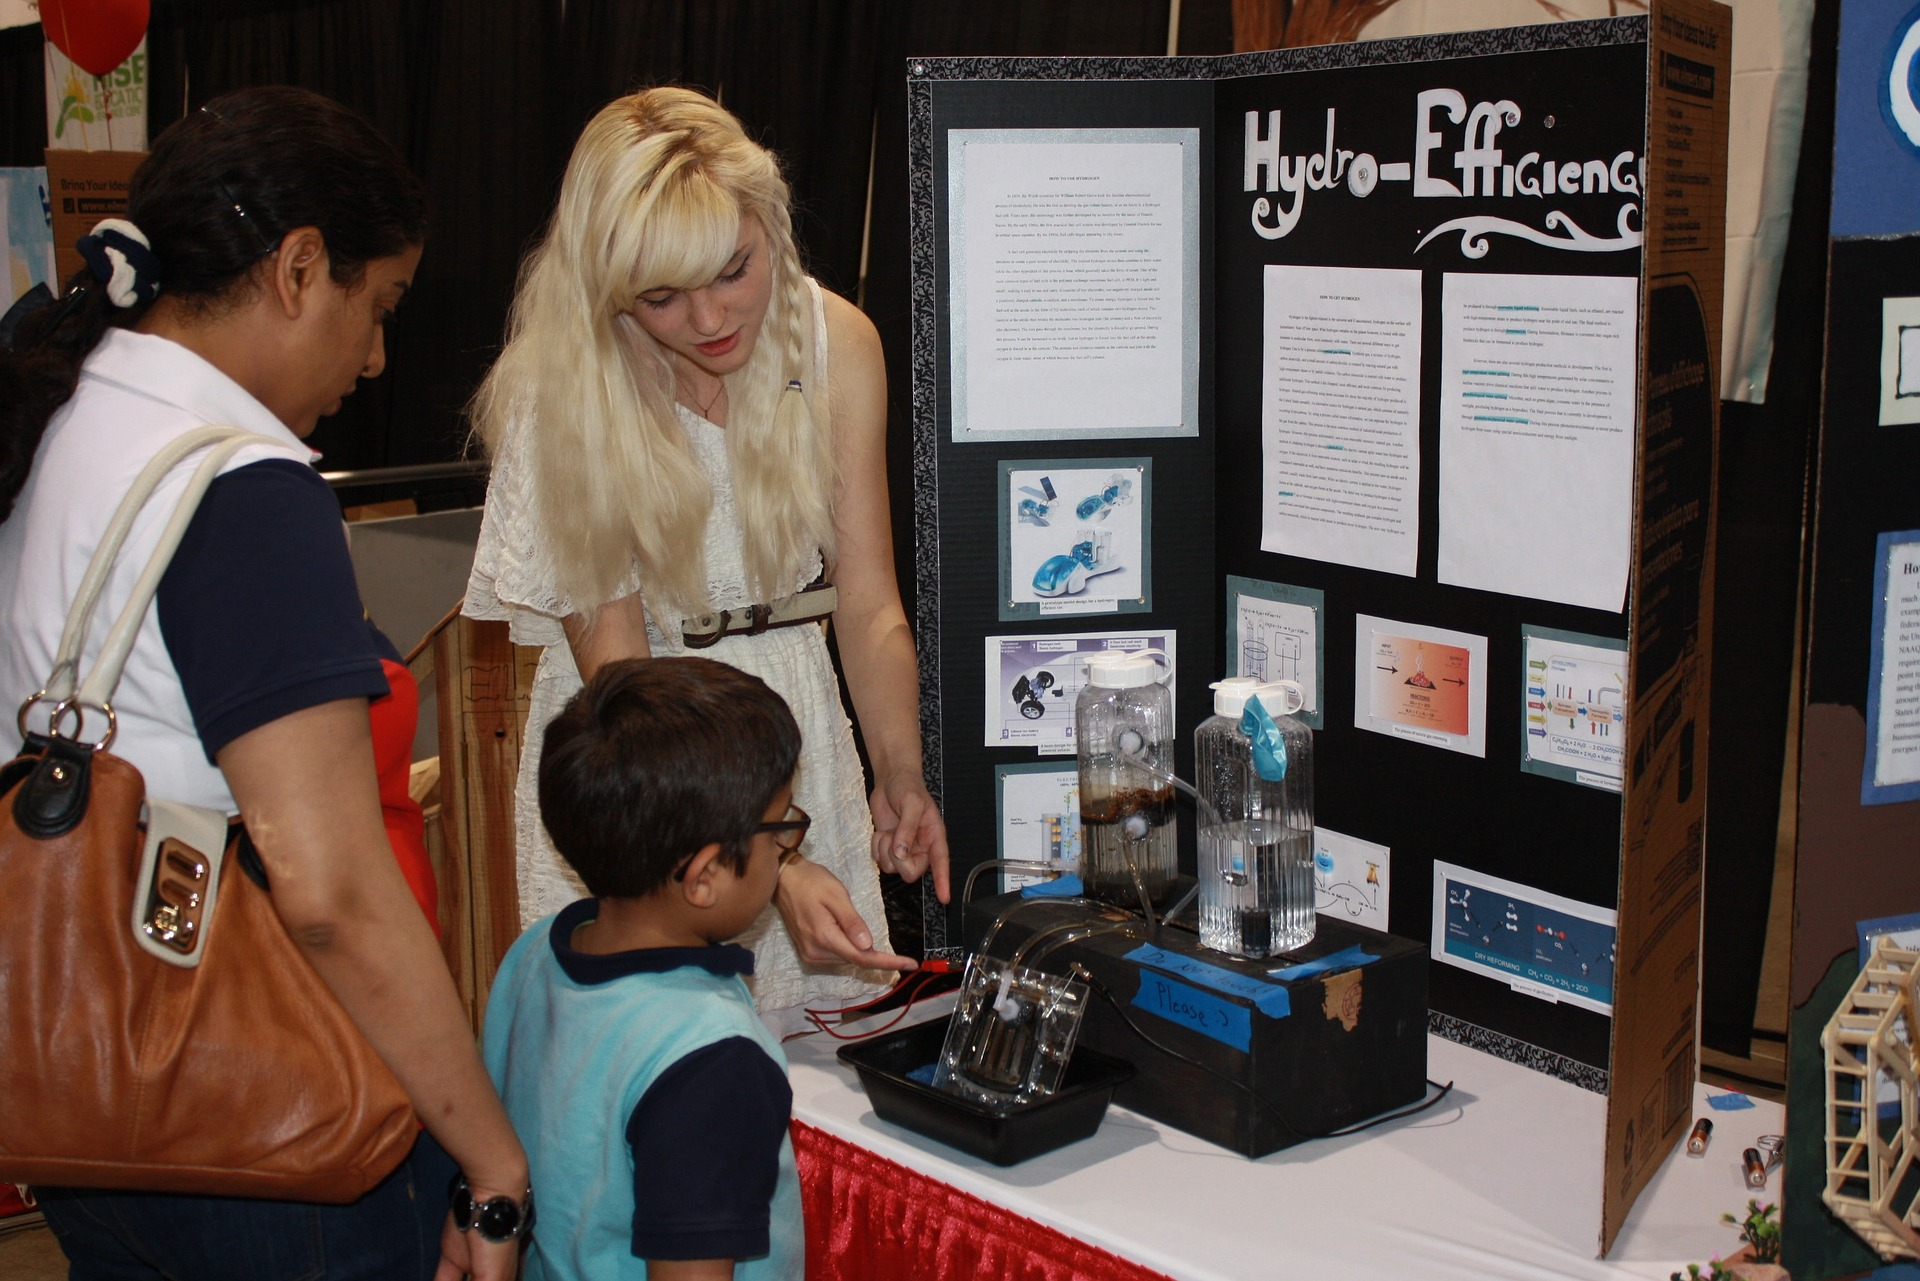 Science Fair participant at booth